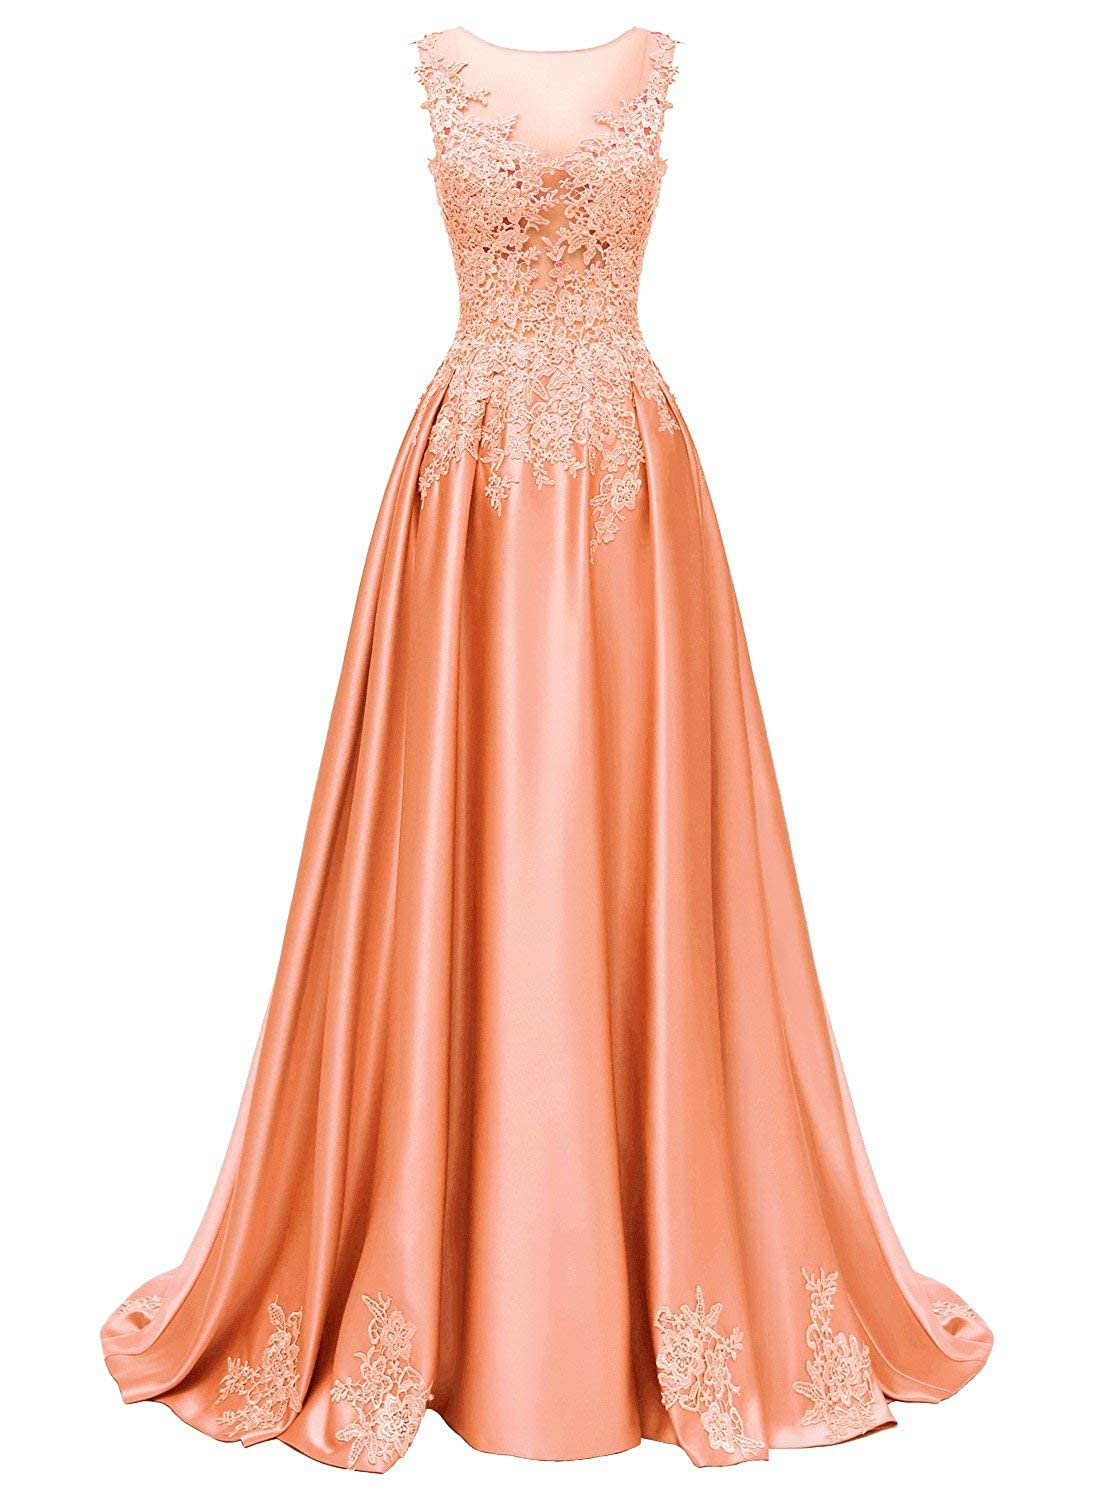 orange Dressytailor Aline Scoop Long Satin Appliques Beading Prom Dress Formal Evening Gown with Pockets